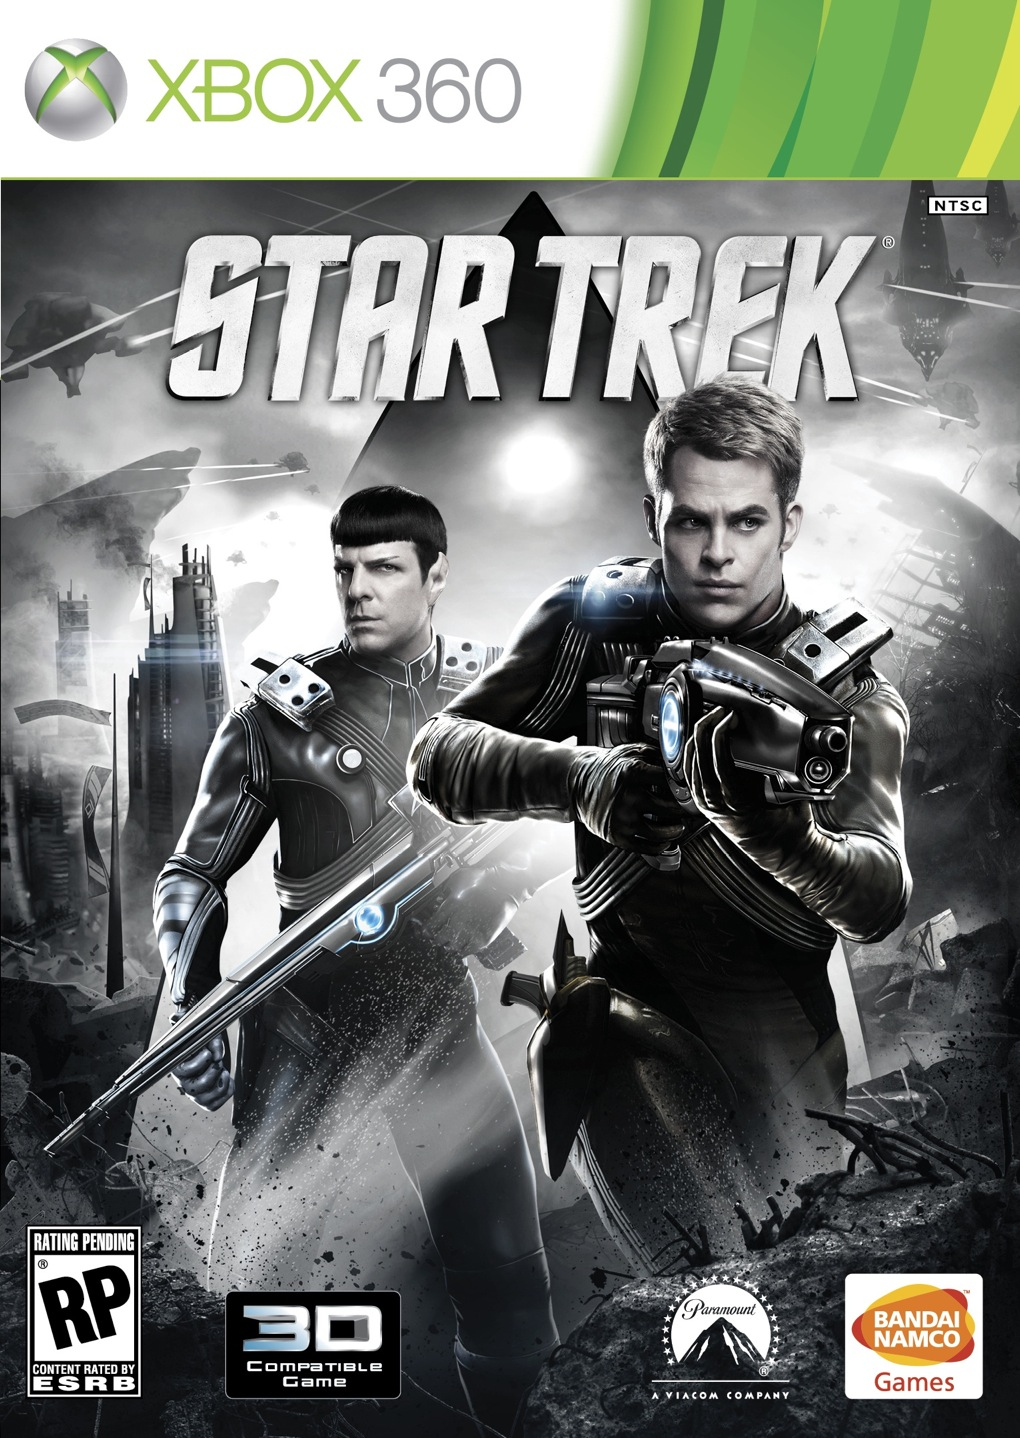 Star Trek: The Video Game